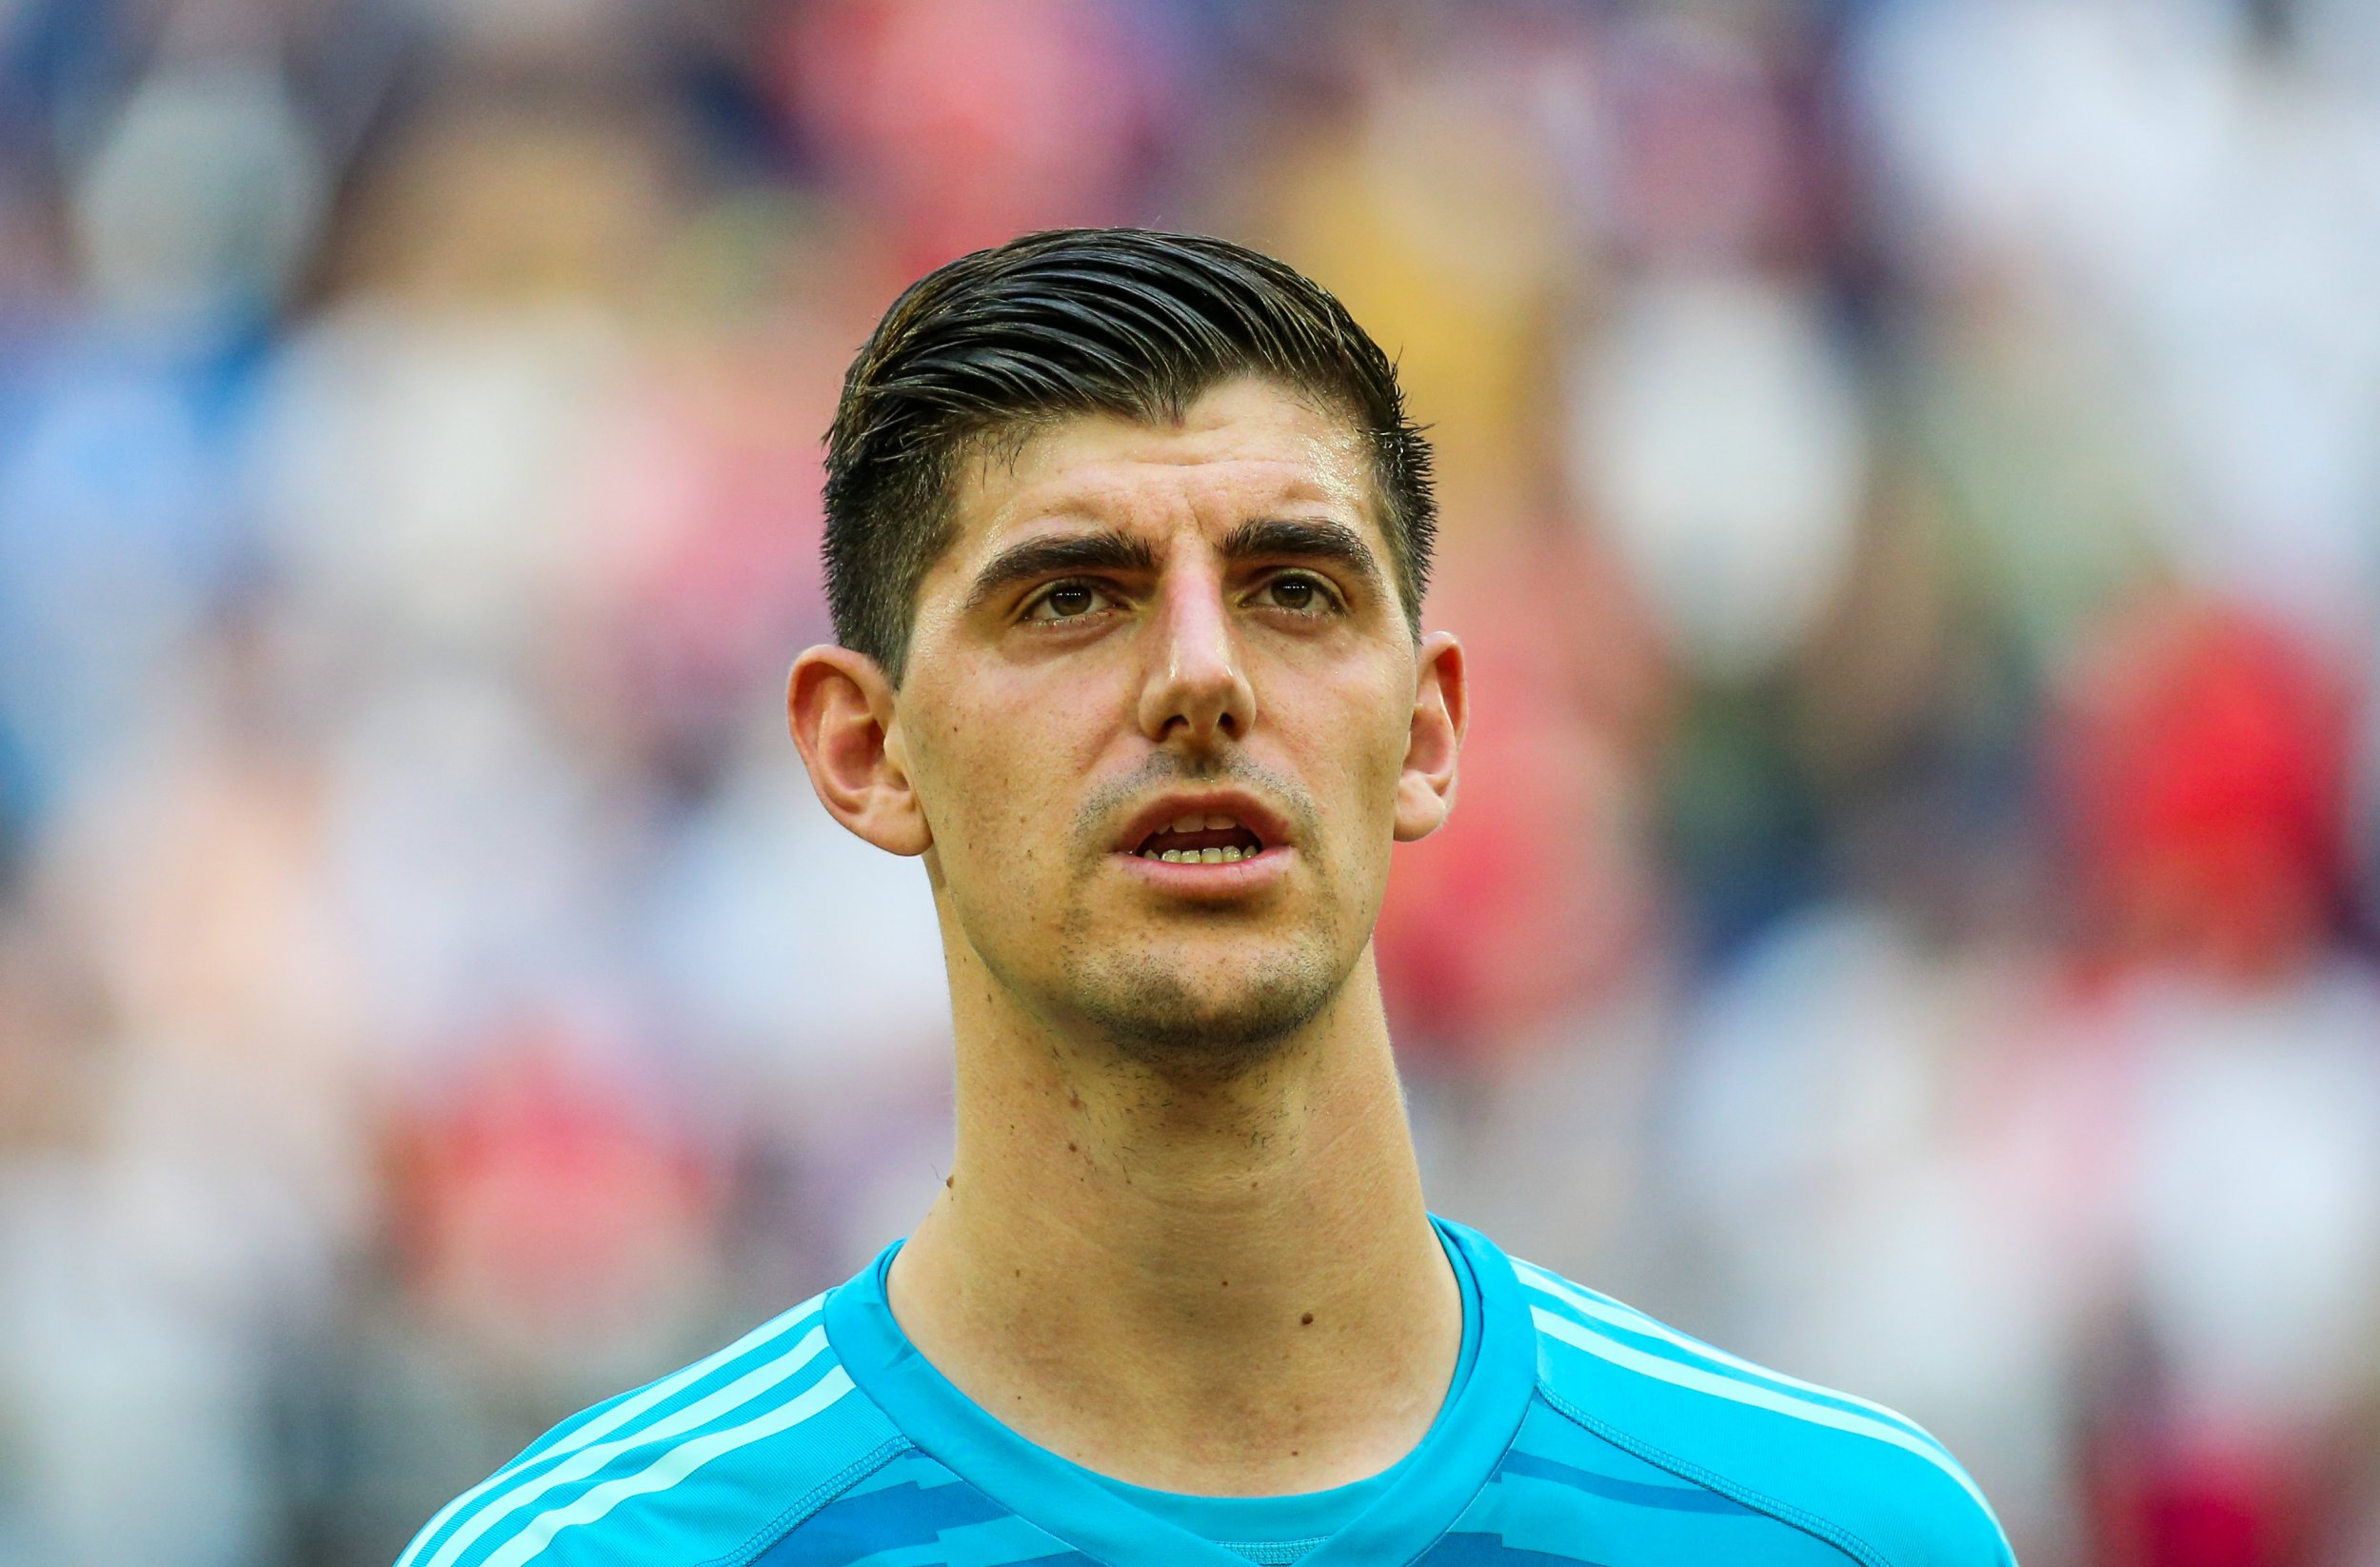 ST PETERSBURG, RUSSIA - JULY 14, 2018: Belgium's goalkeeper Thibaut Courtois sings the Belgian national anthem ahead of the 2018 FIFA World Cup Play-off for third place match against England at St Petersburg Stadium. Belgium won the game 2-0. Peter Kovalev/TASS (Photo by Peter Kovalev\TASS via Getty Images)